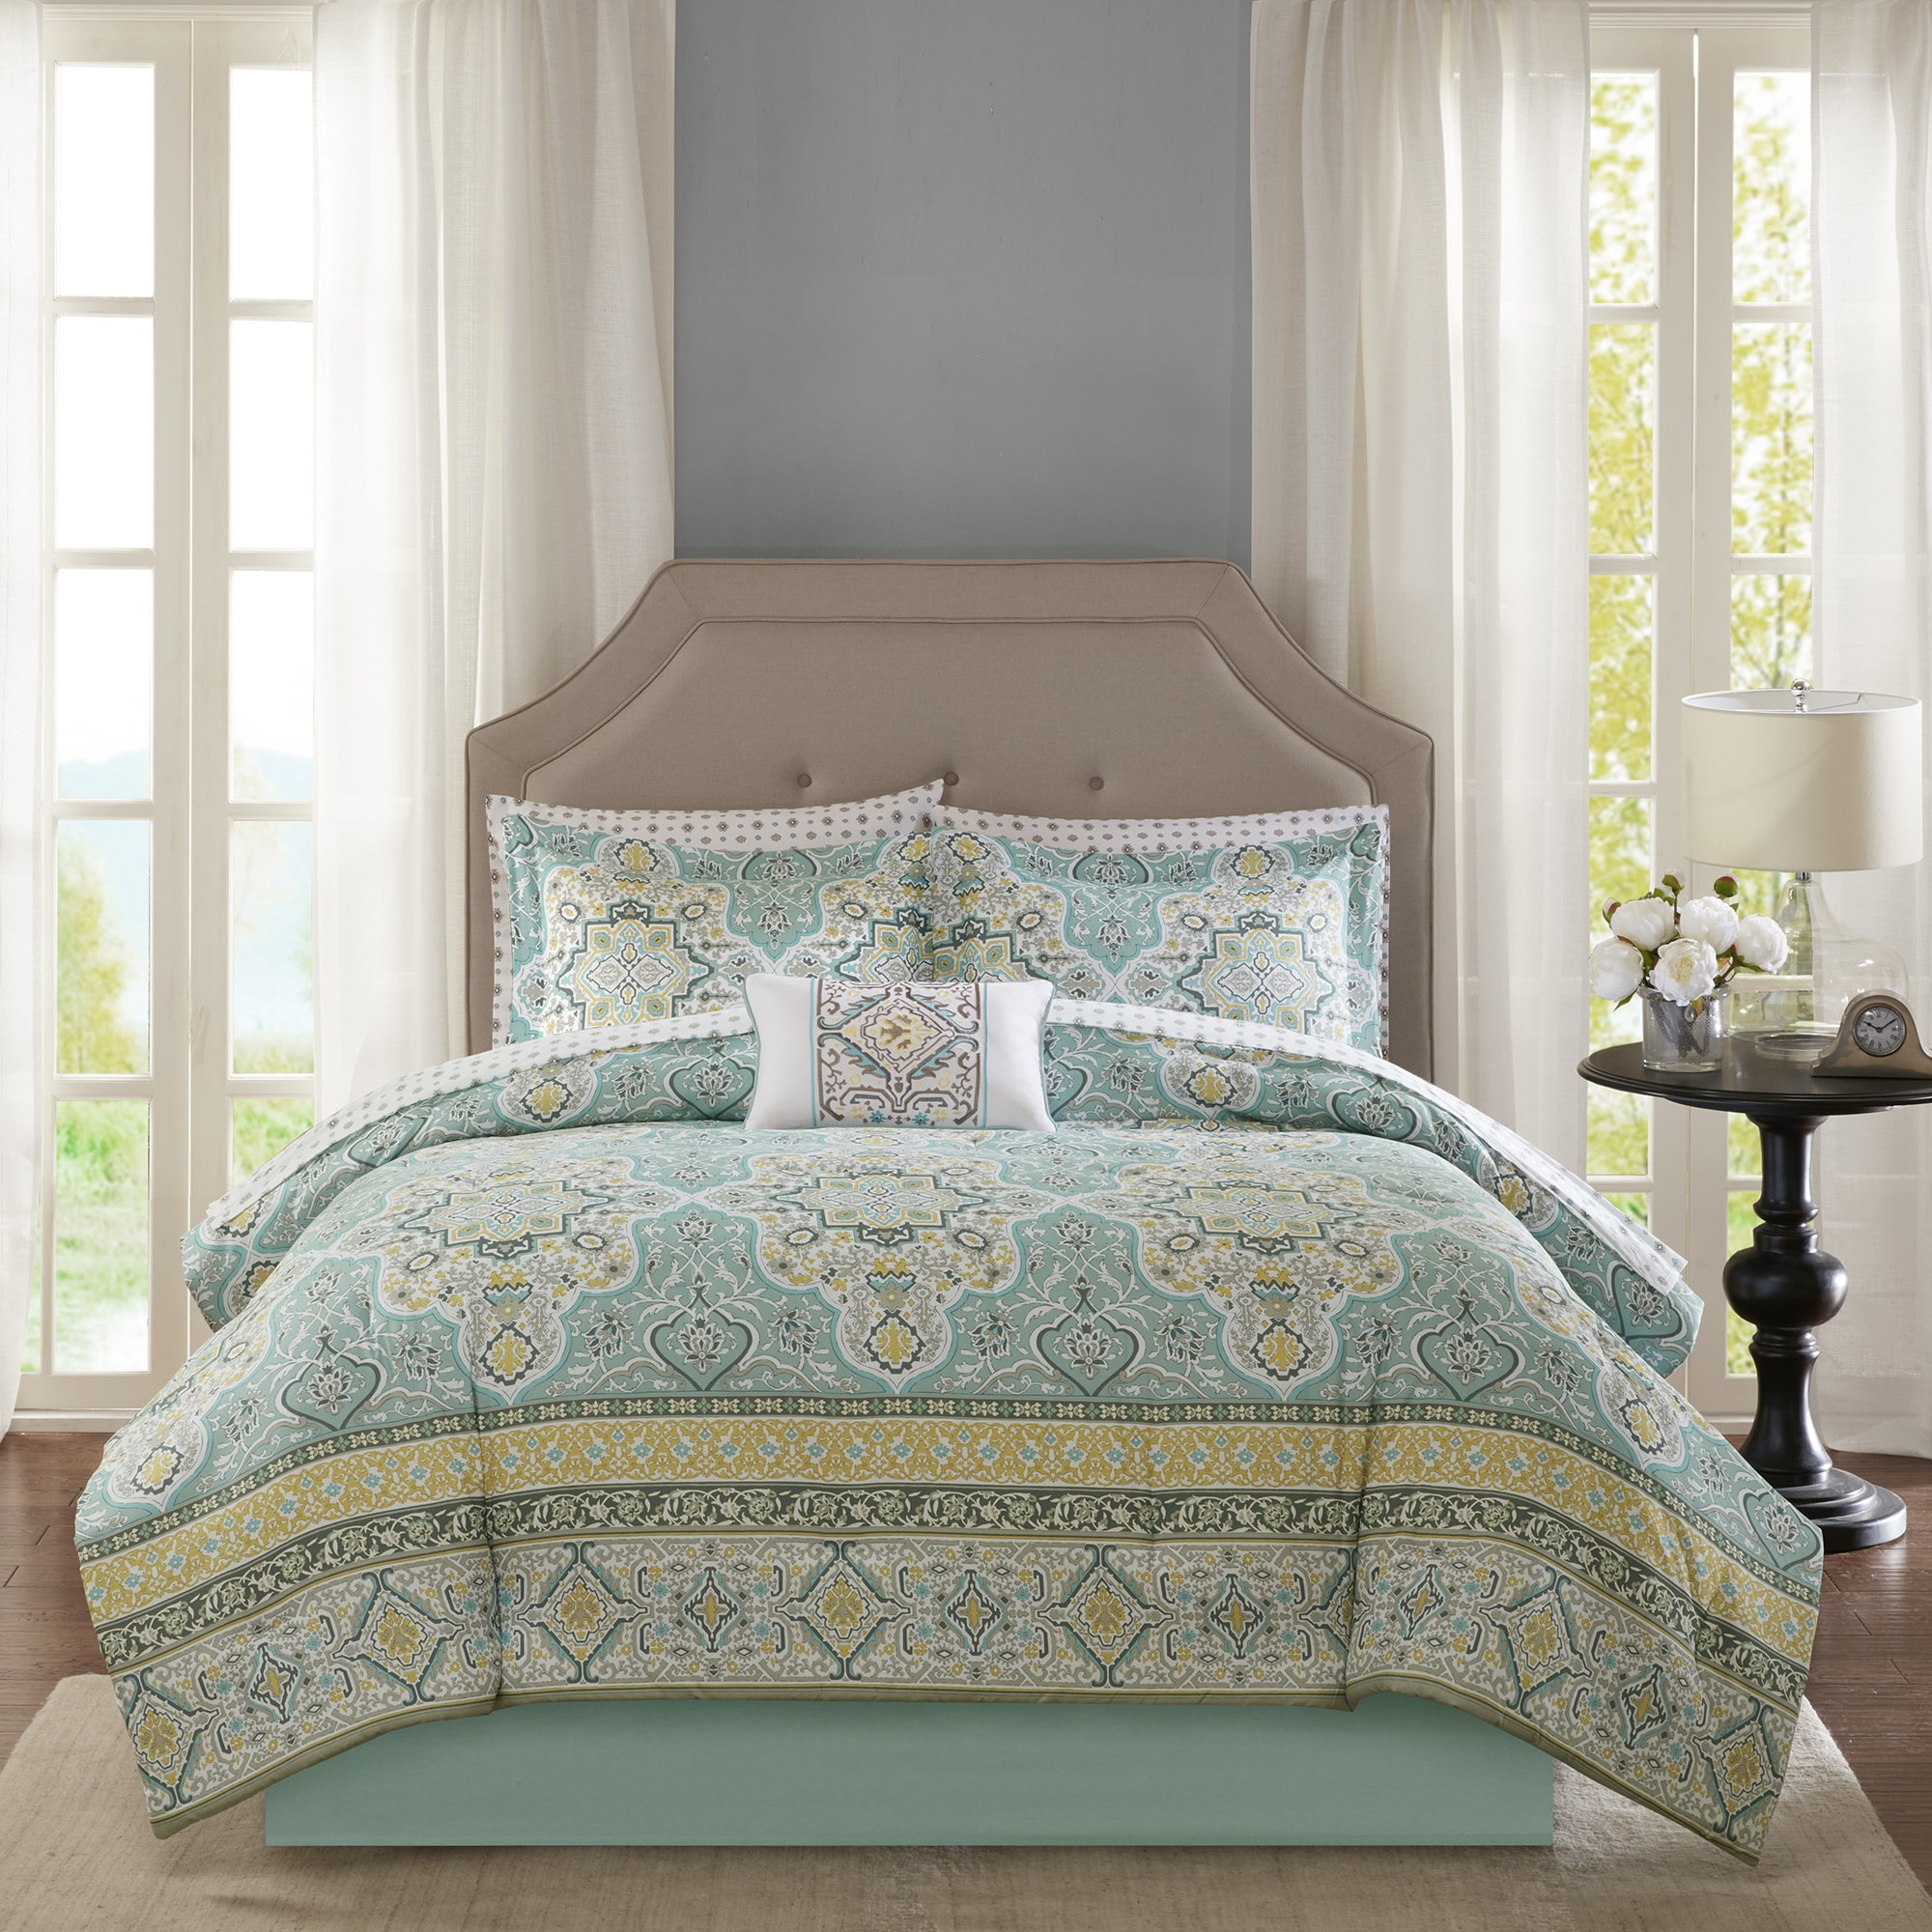 free pin bedding over white fashion full orders shipping overstock bed com on